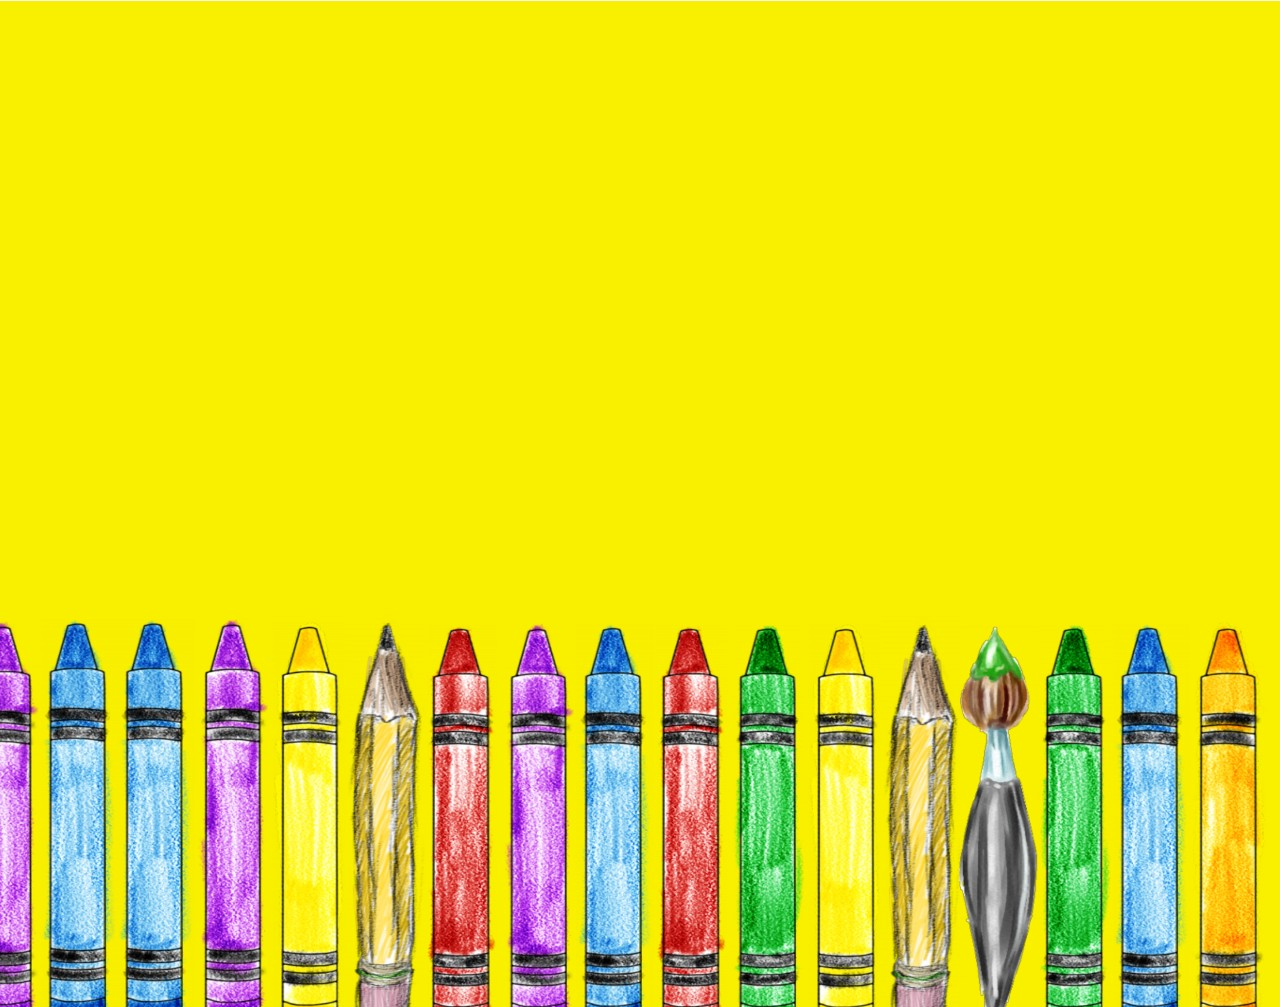 School For Kids Backgrounds For PowerPoint   Education PPT Templates 1280x1007